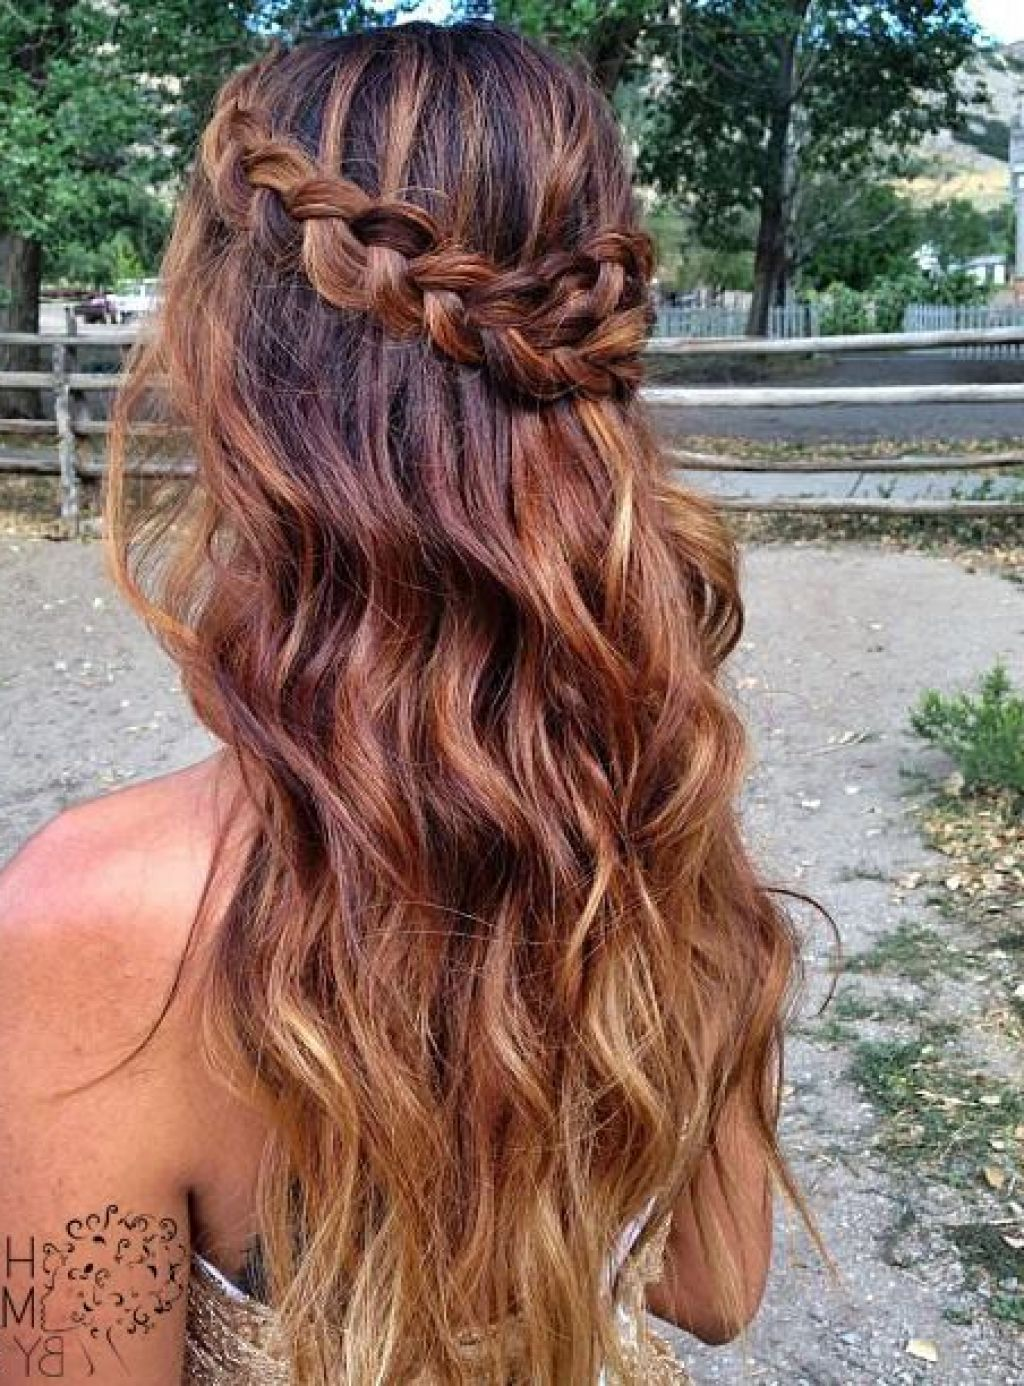 prom-hairstyles-ideas-with-wavy-hairstyle-and-braids-55bf177937f59.jpg (1024×1386)